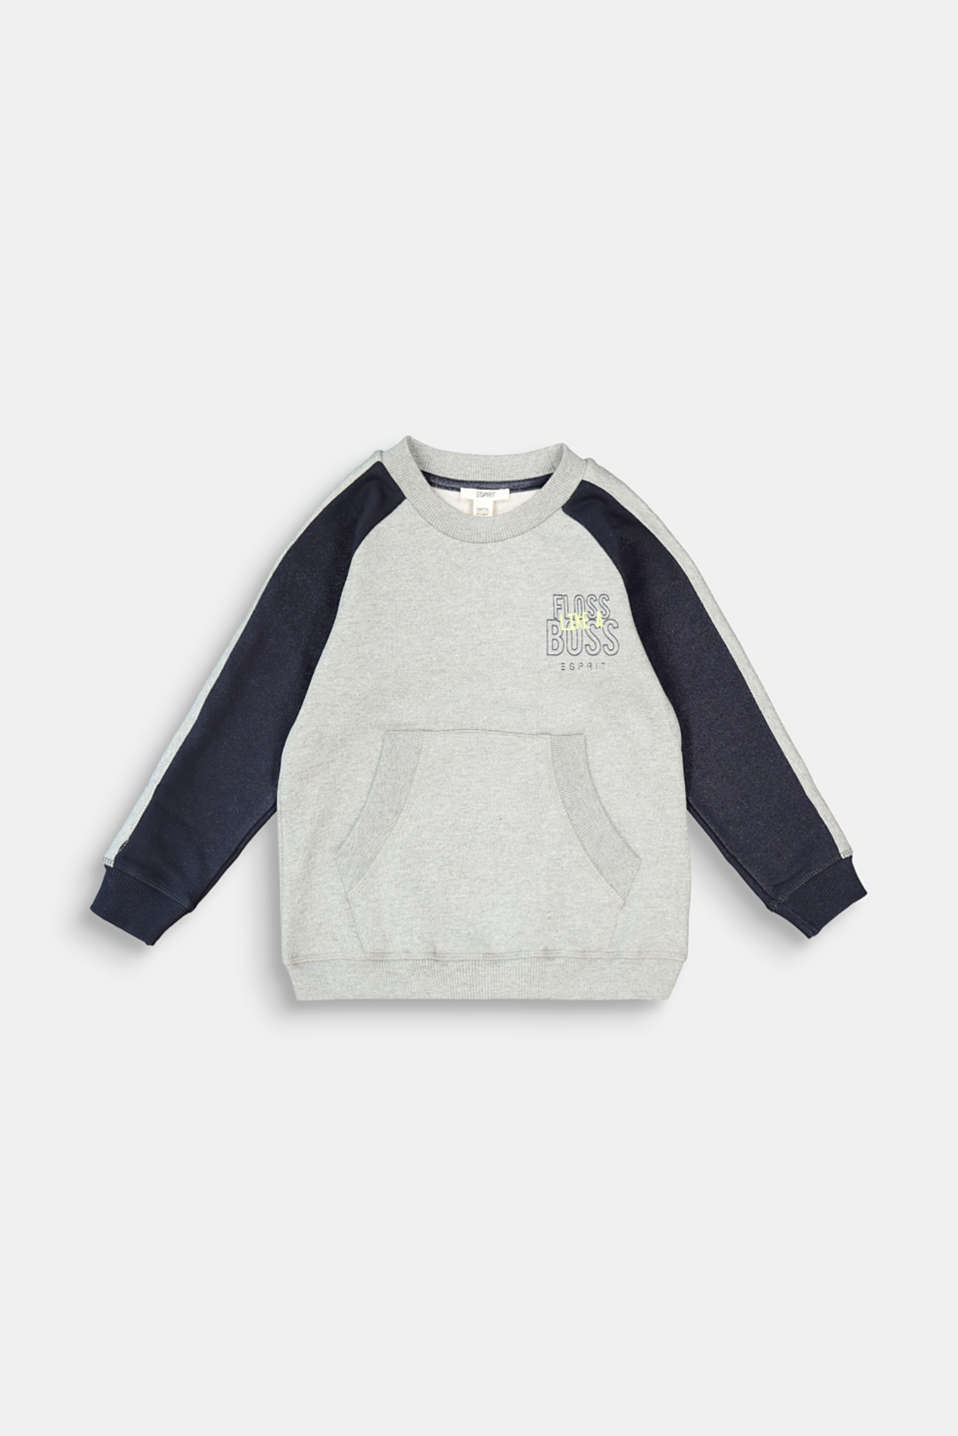 Esprit - Sweatshirt with a print, 100% cotton